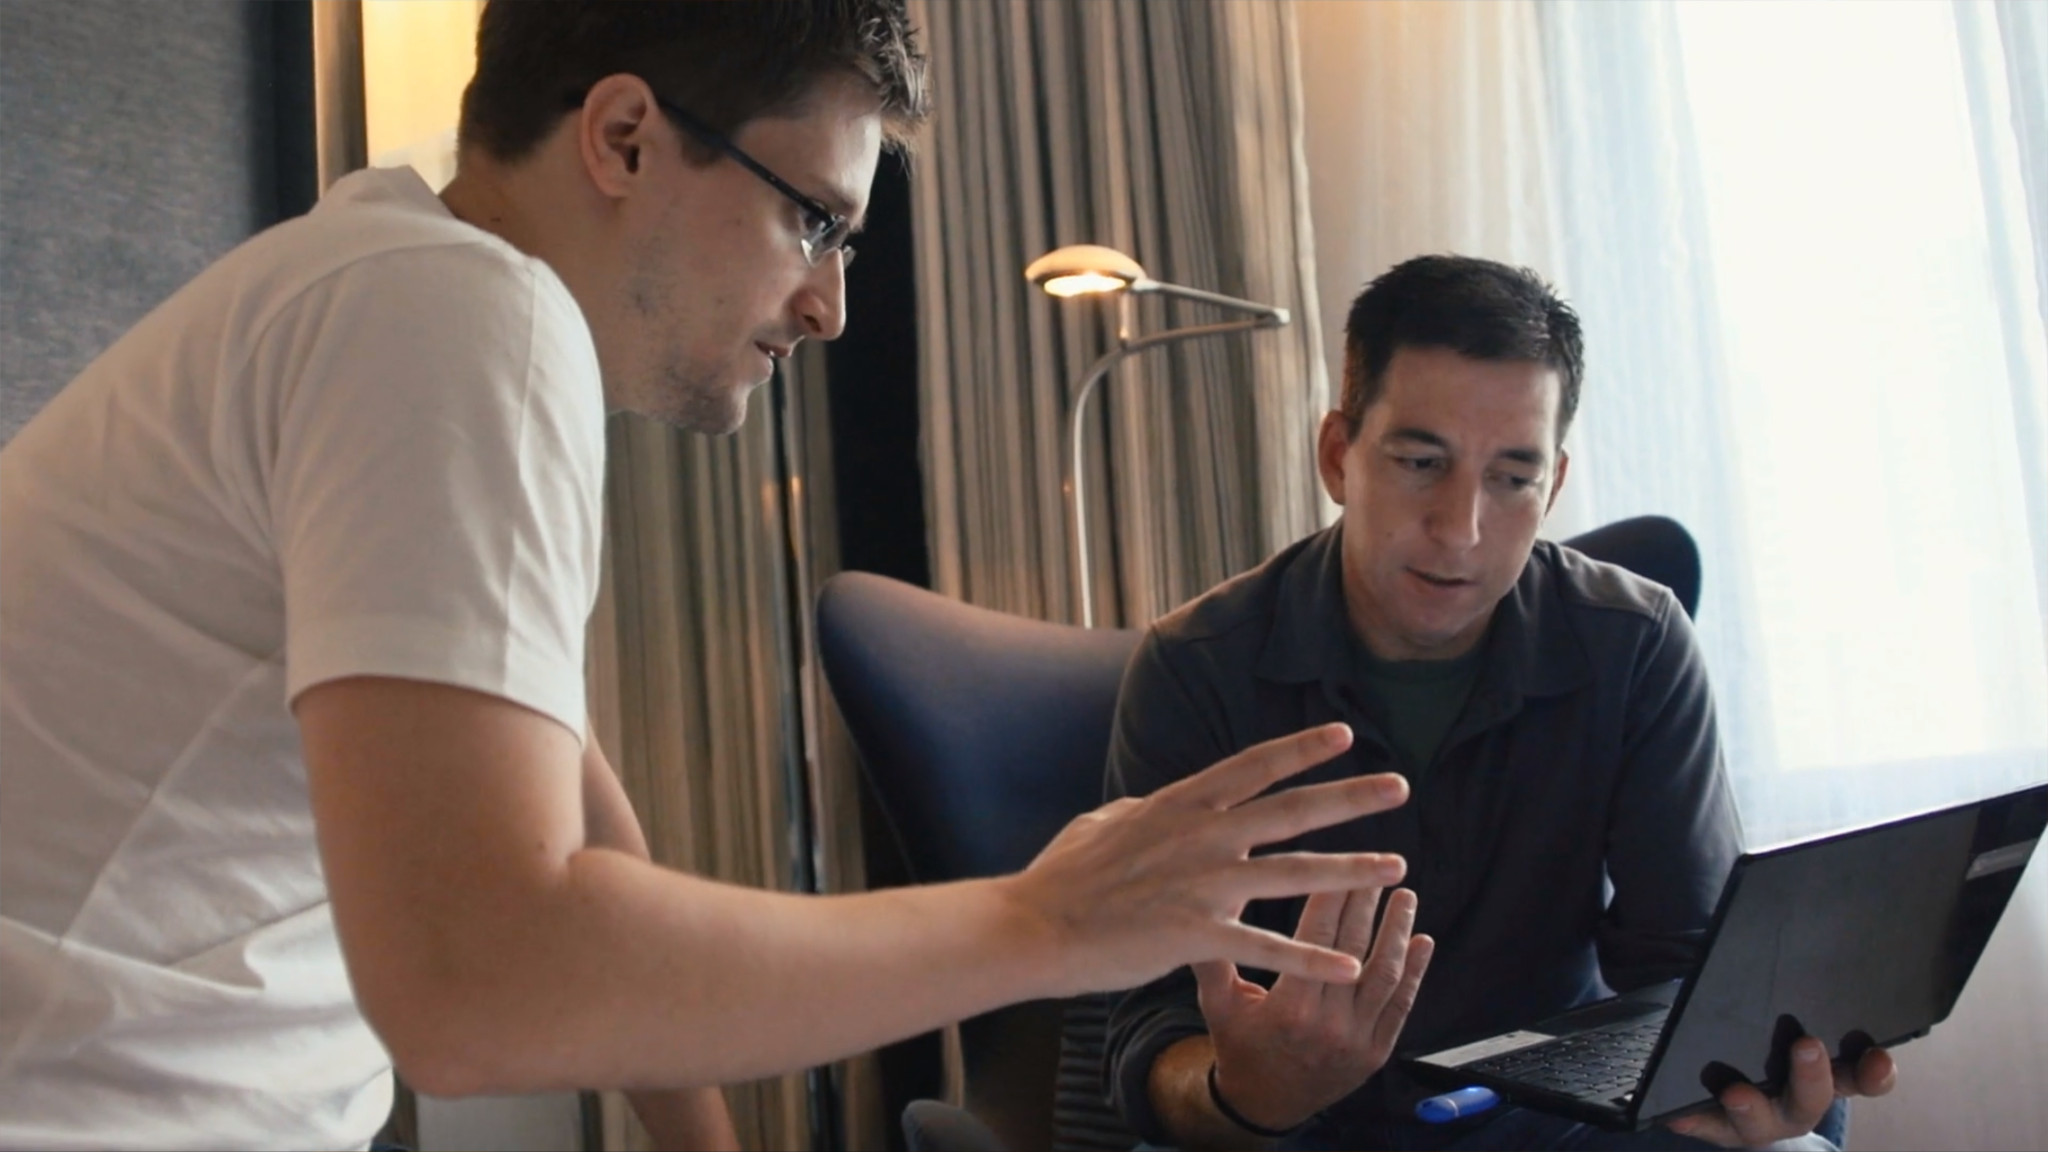 Edward Snowden and Glen Greenwald